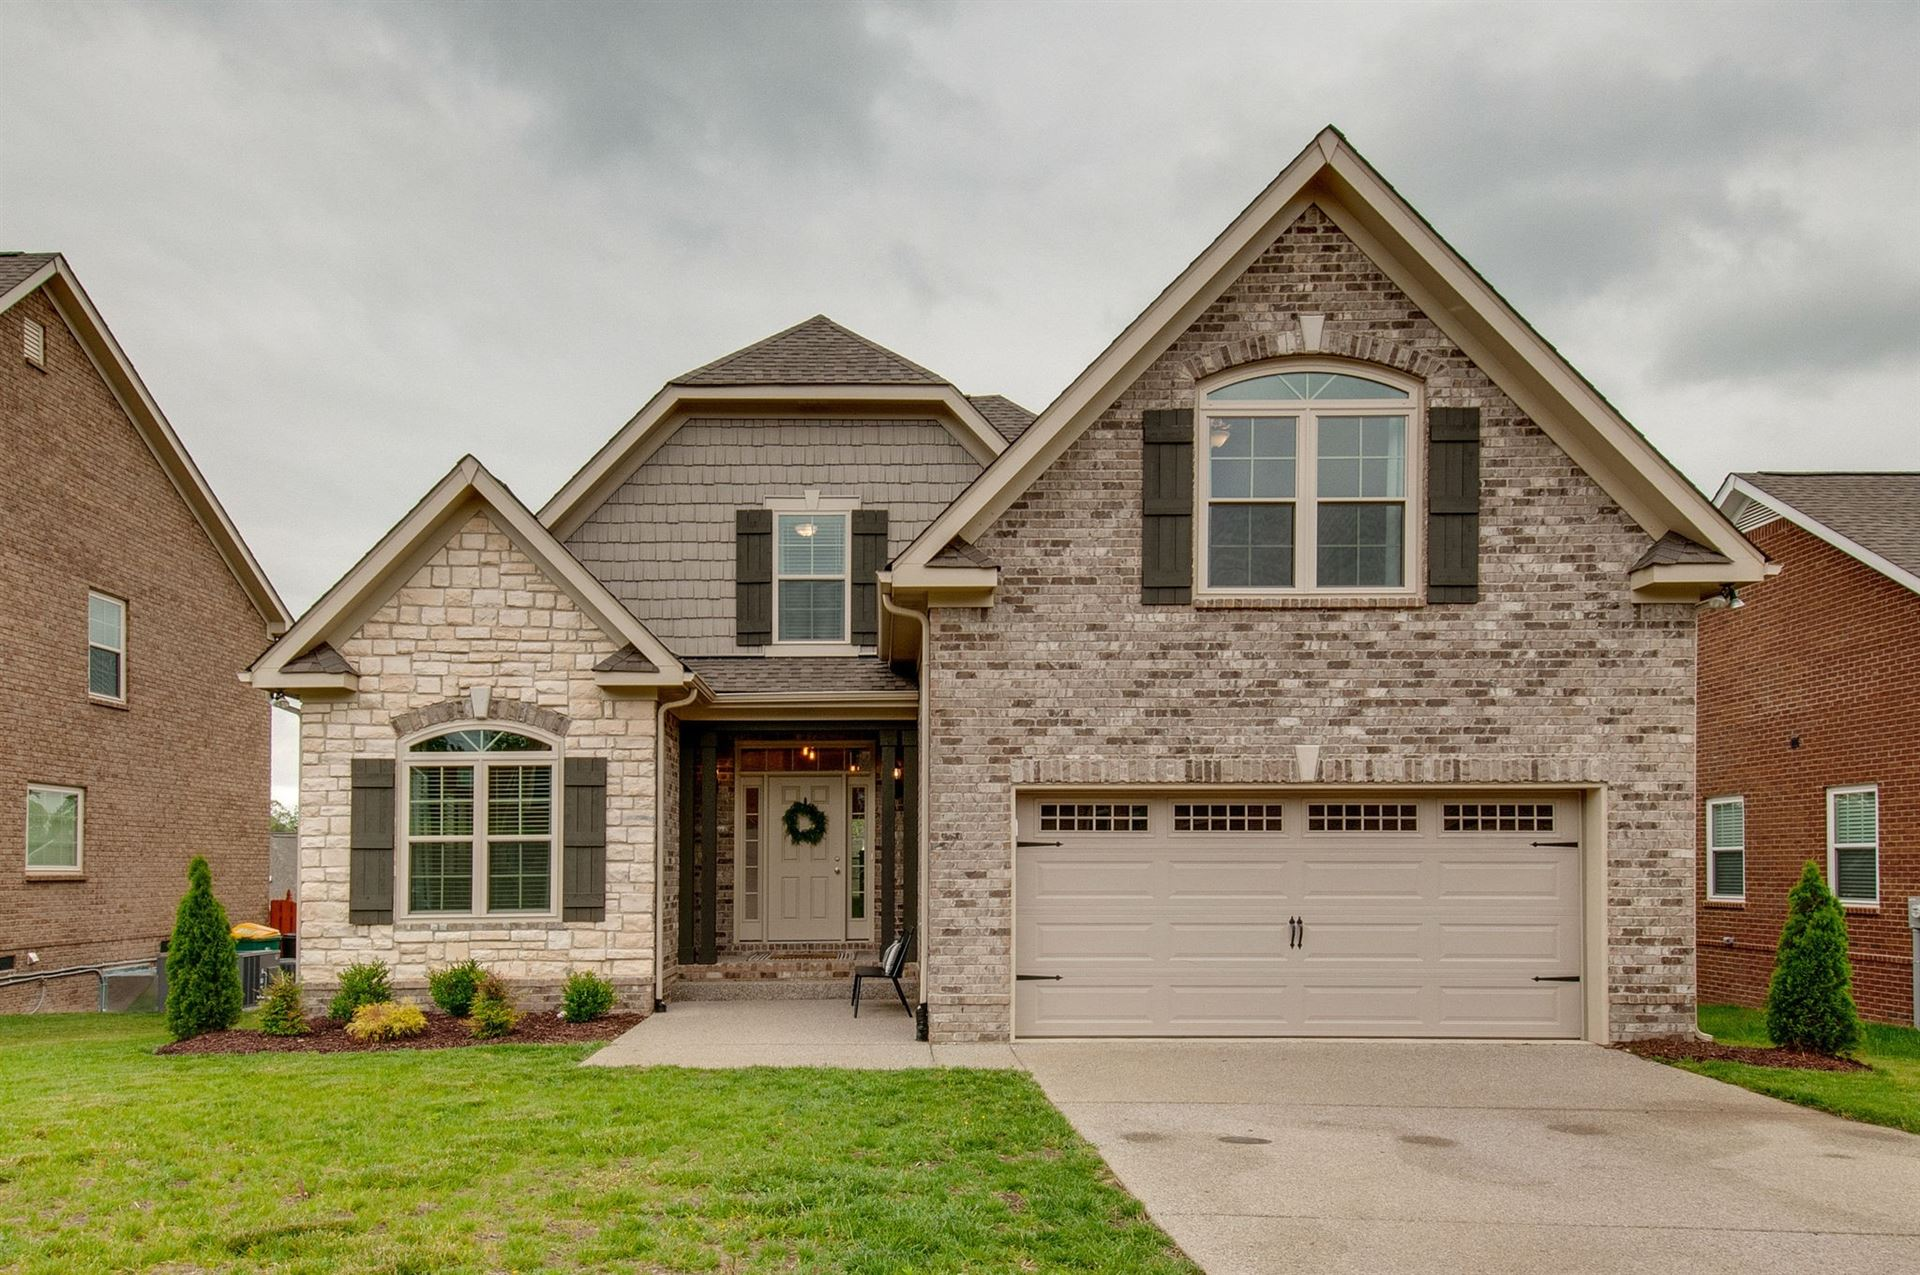 Photo of 7005 Minor Hill Dr, Spring Hill, TN 37174 (MLS # 2167954)